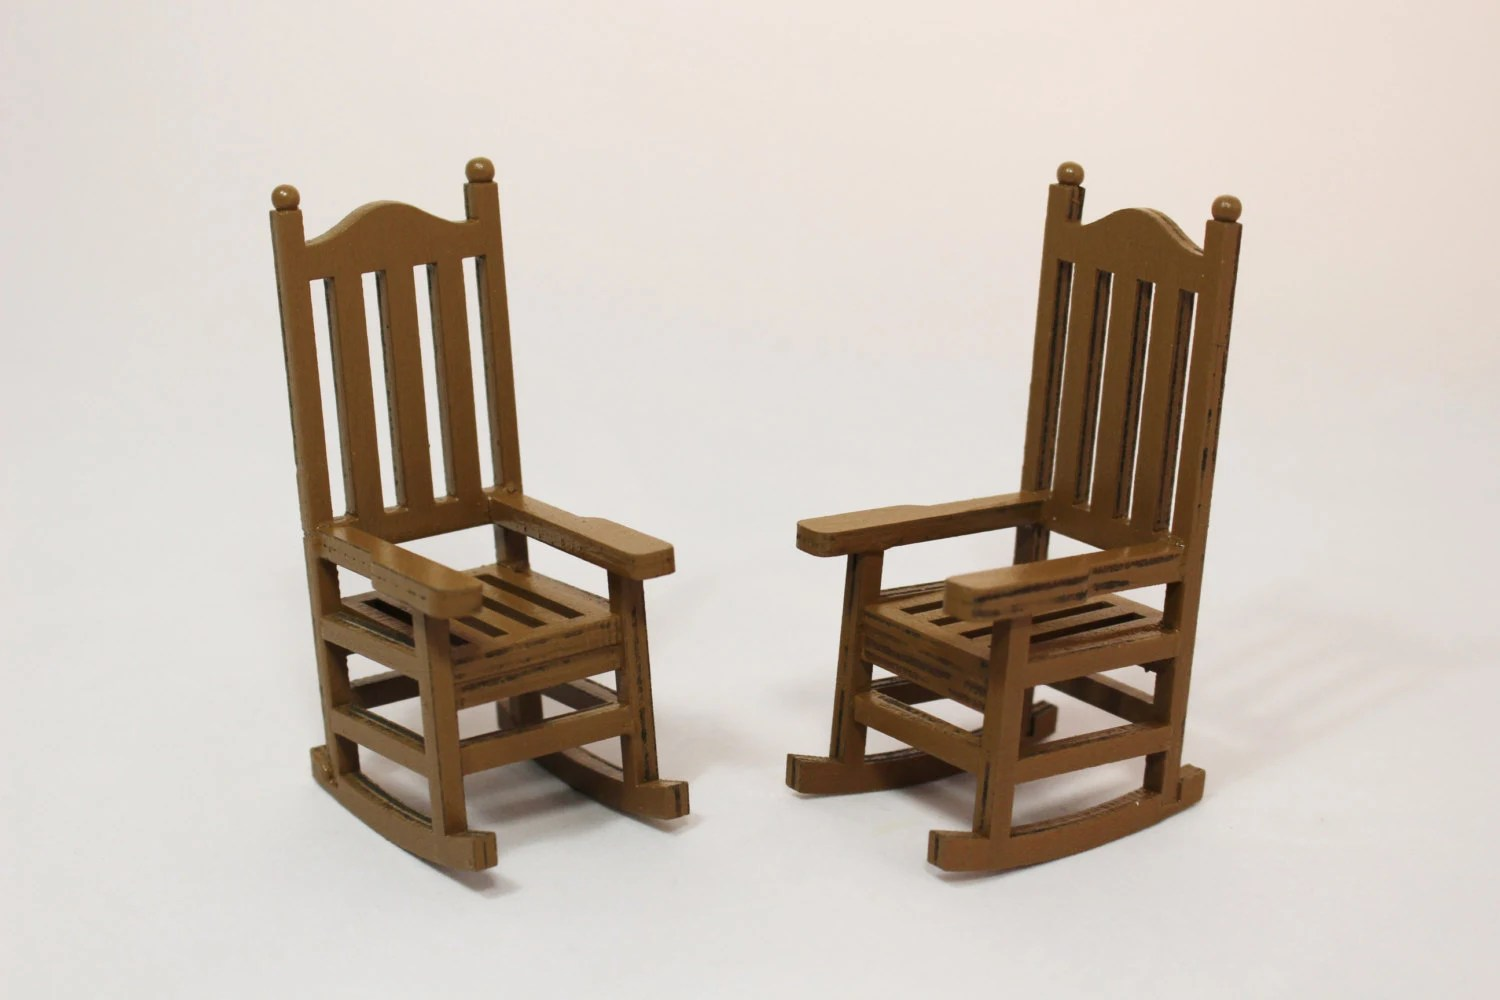 Miniature Chairs 1 Miniature Wooden Rocking Chair Dollhouse Miniatures Fairy